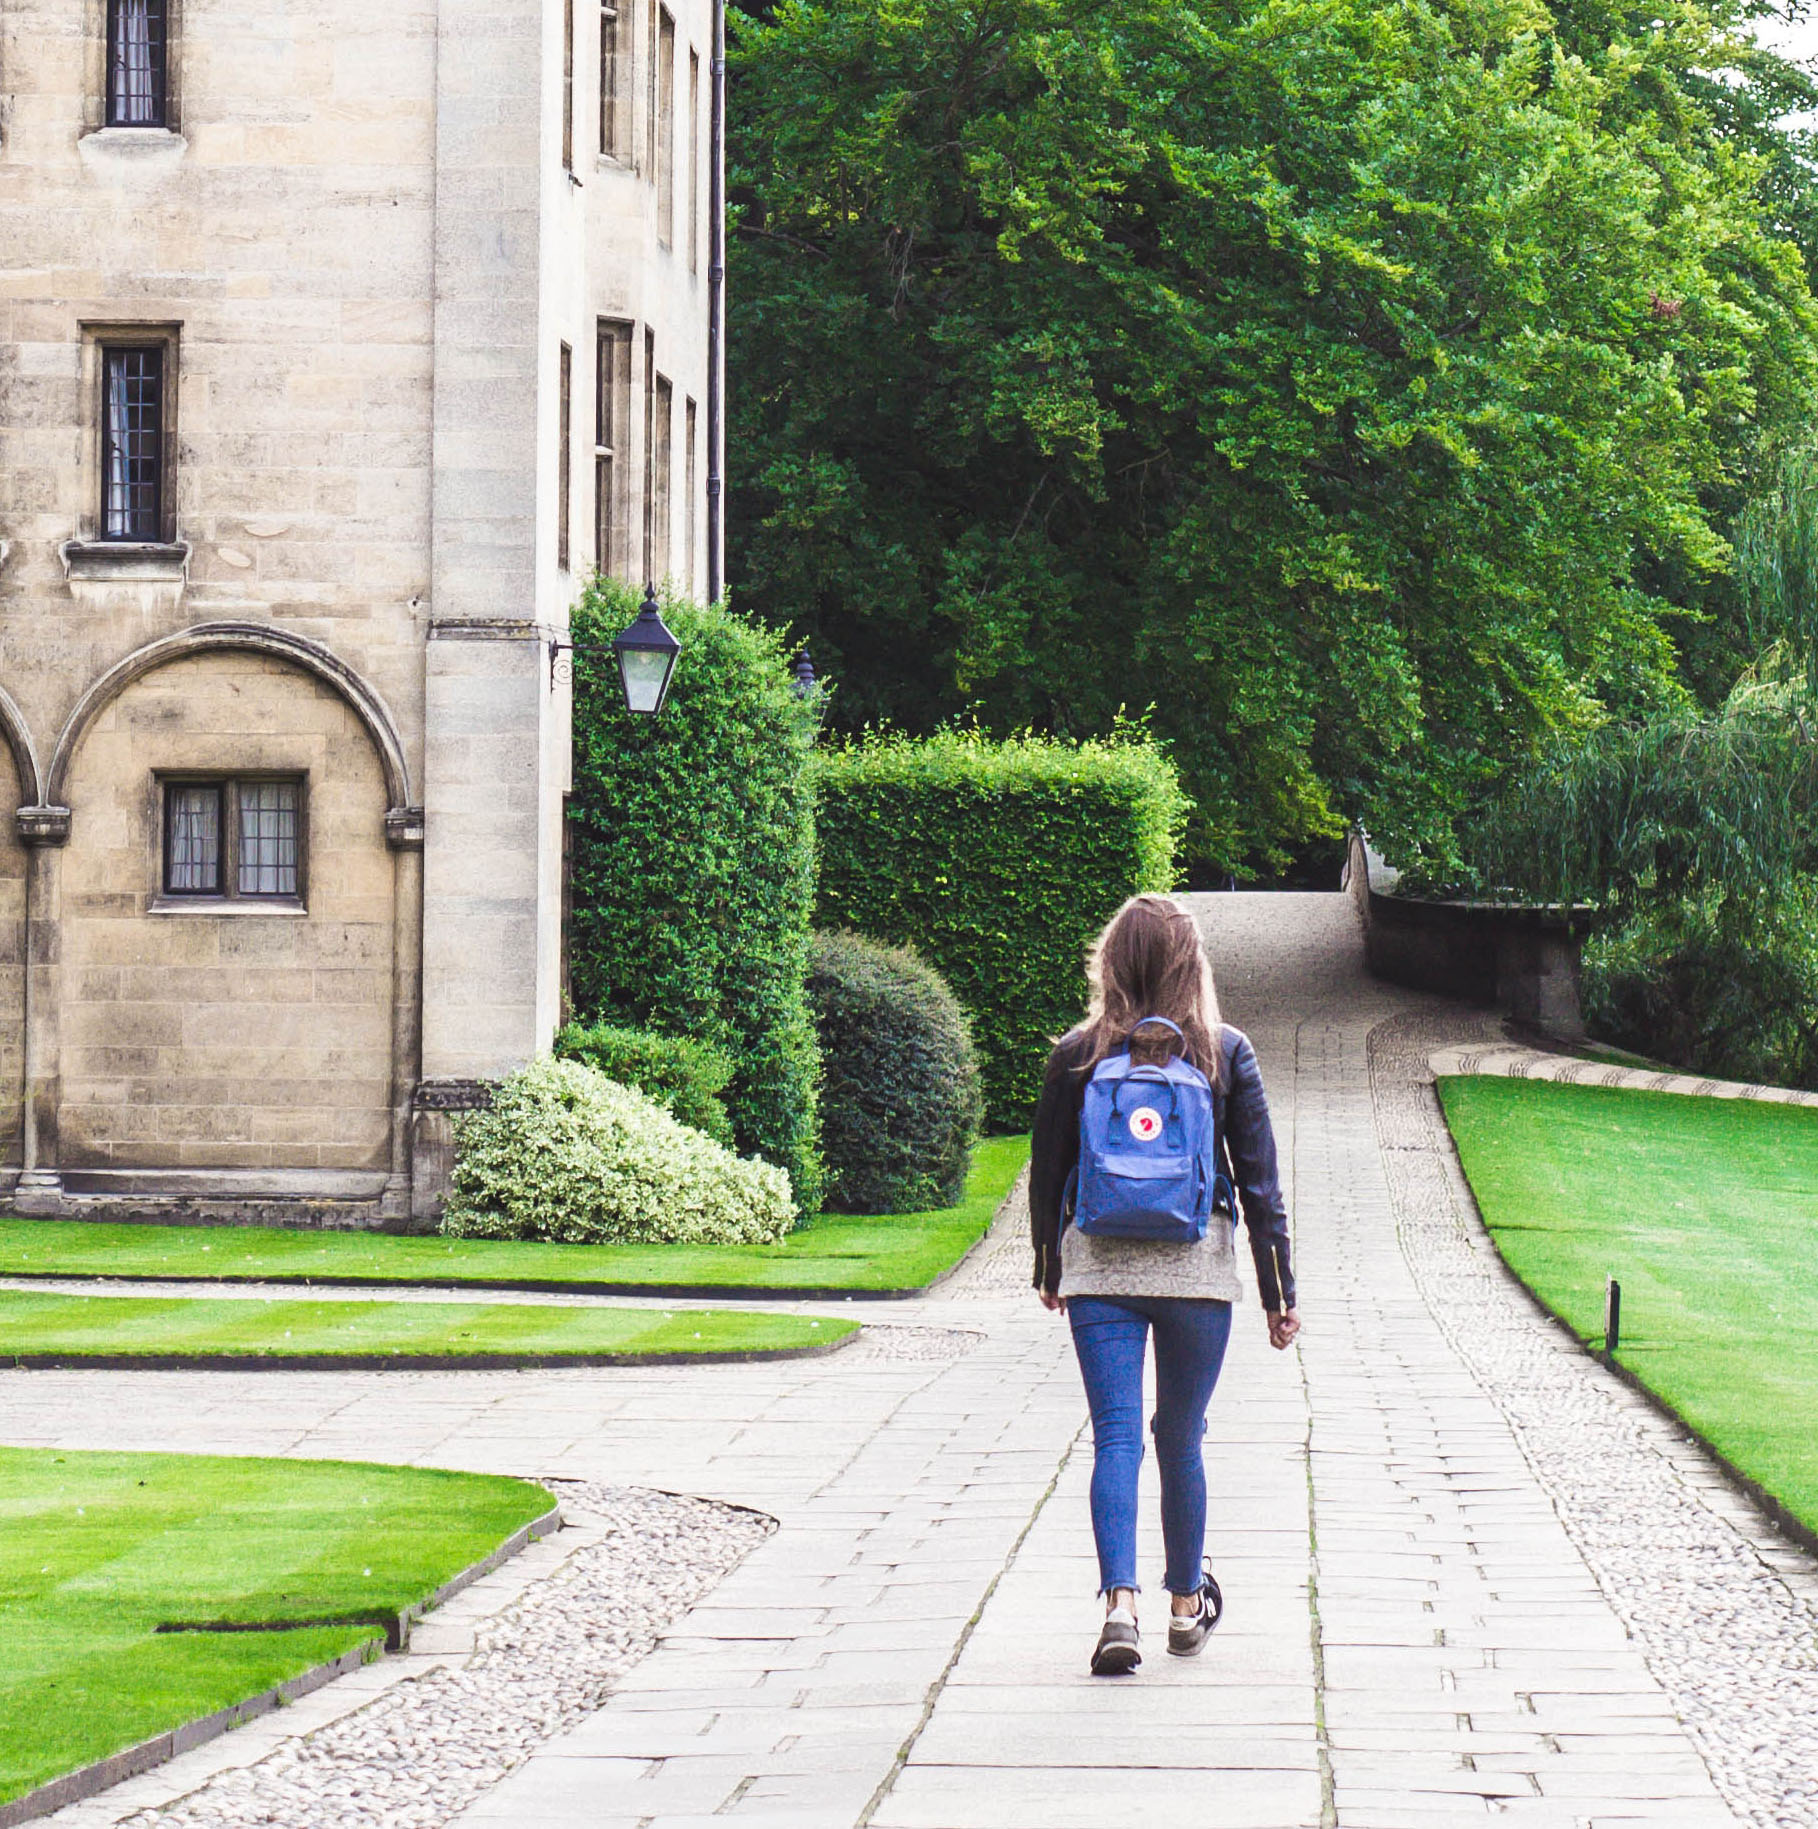 A student walking on a college campus wearing a backpack